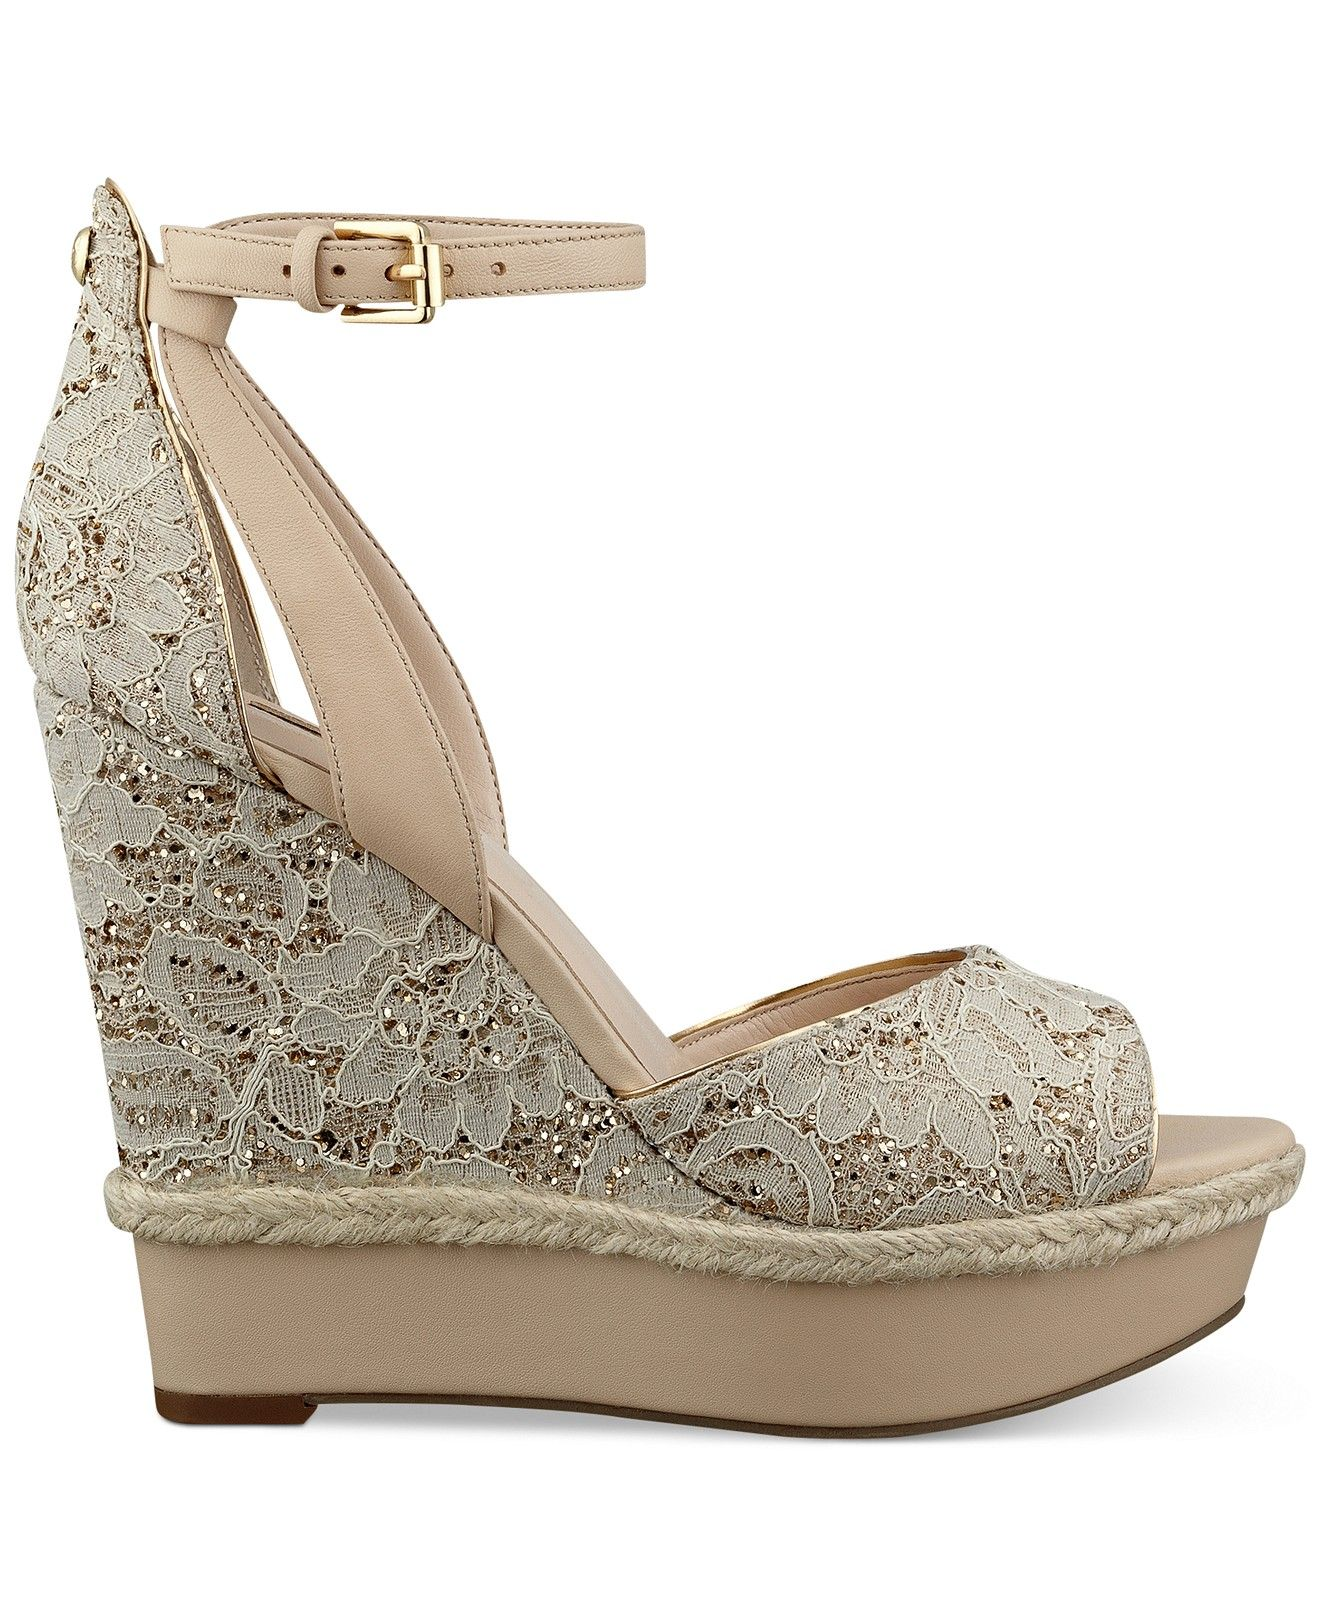 ab6027068ada GUESS Women s Odin Ankle Strap Platform Wedge Sandals - Sale   Clearance -  Shoes - Macy s